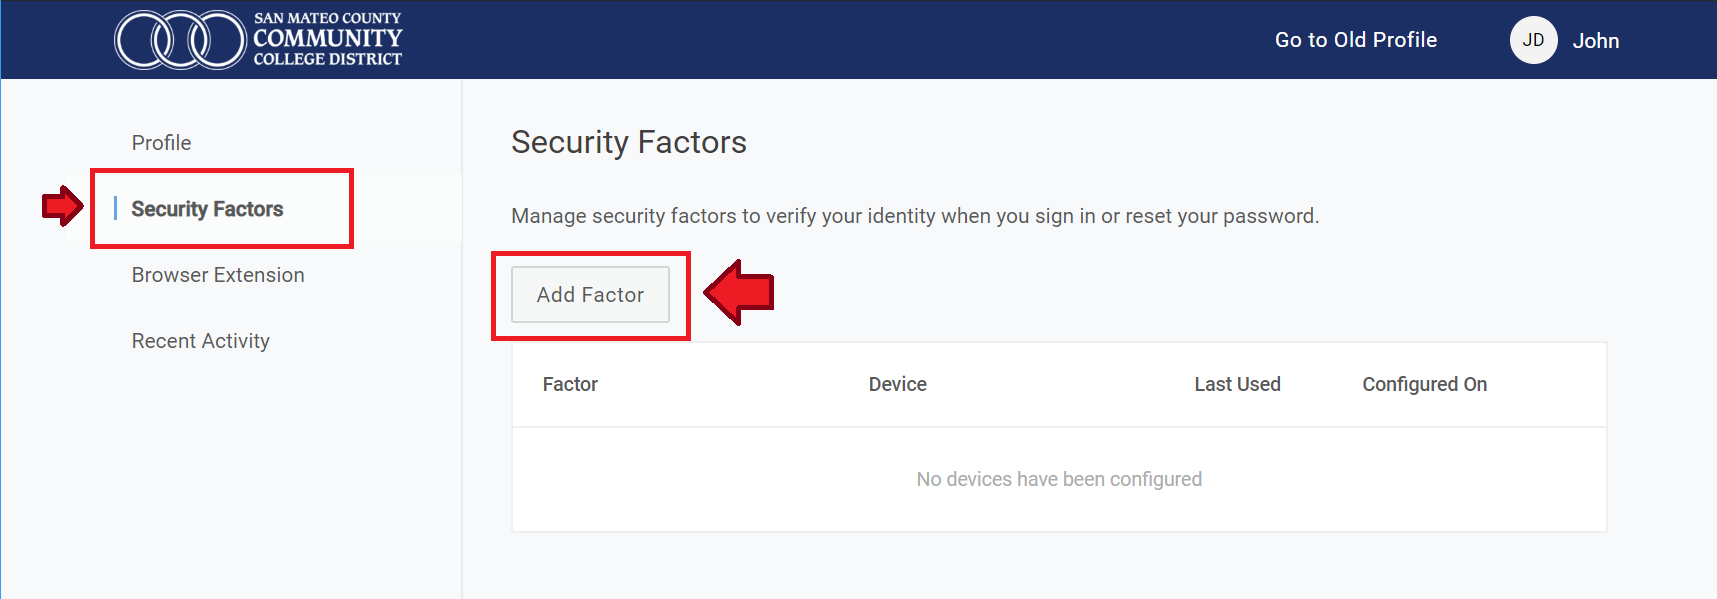 Security Factor side menu and Add Factor button hightlighted